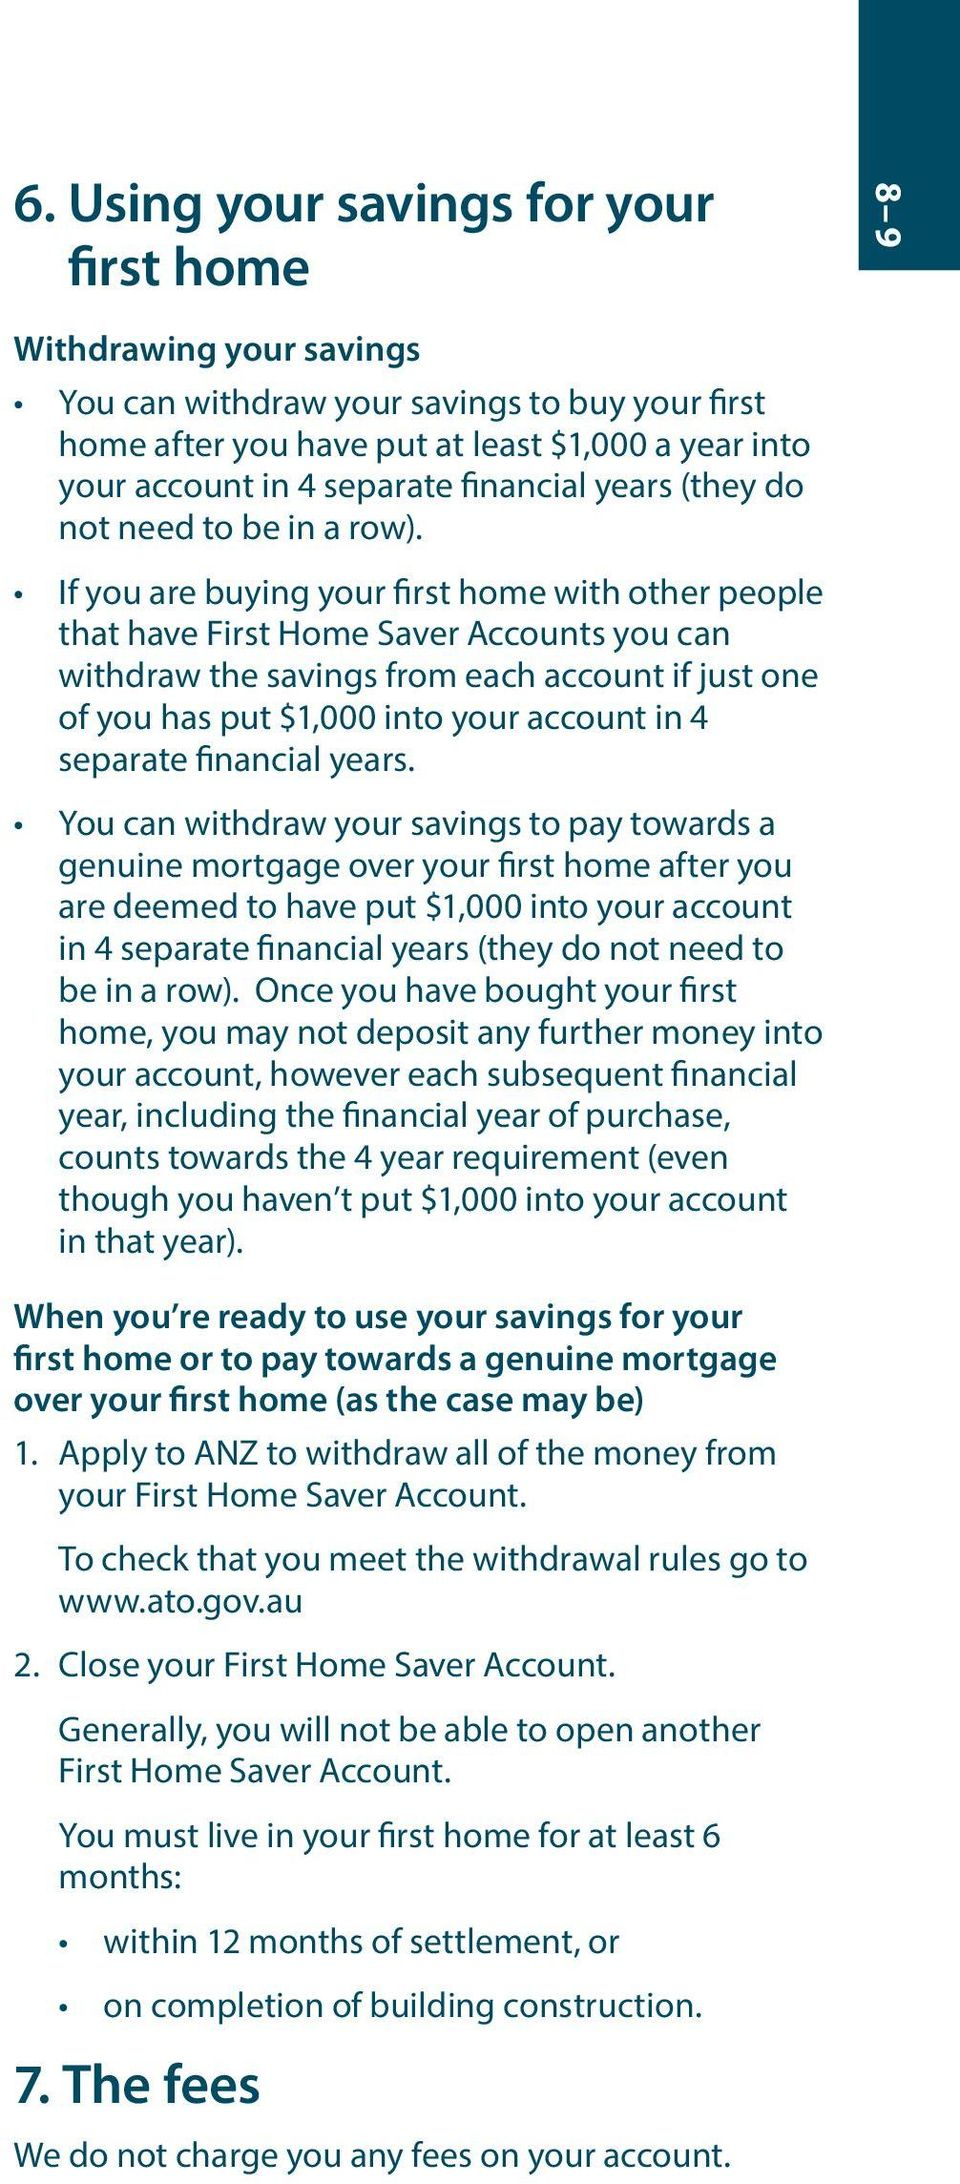 If you are buying your first home with other people that have First Home Saver Accounts you can withdraw the savings from each account if just one of you has put $1,000 into your account in 4